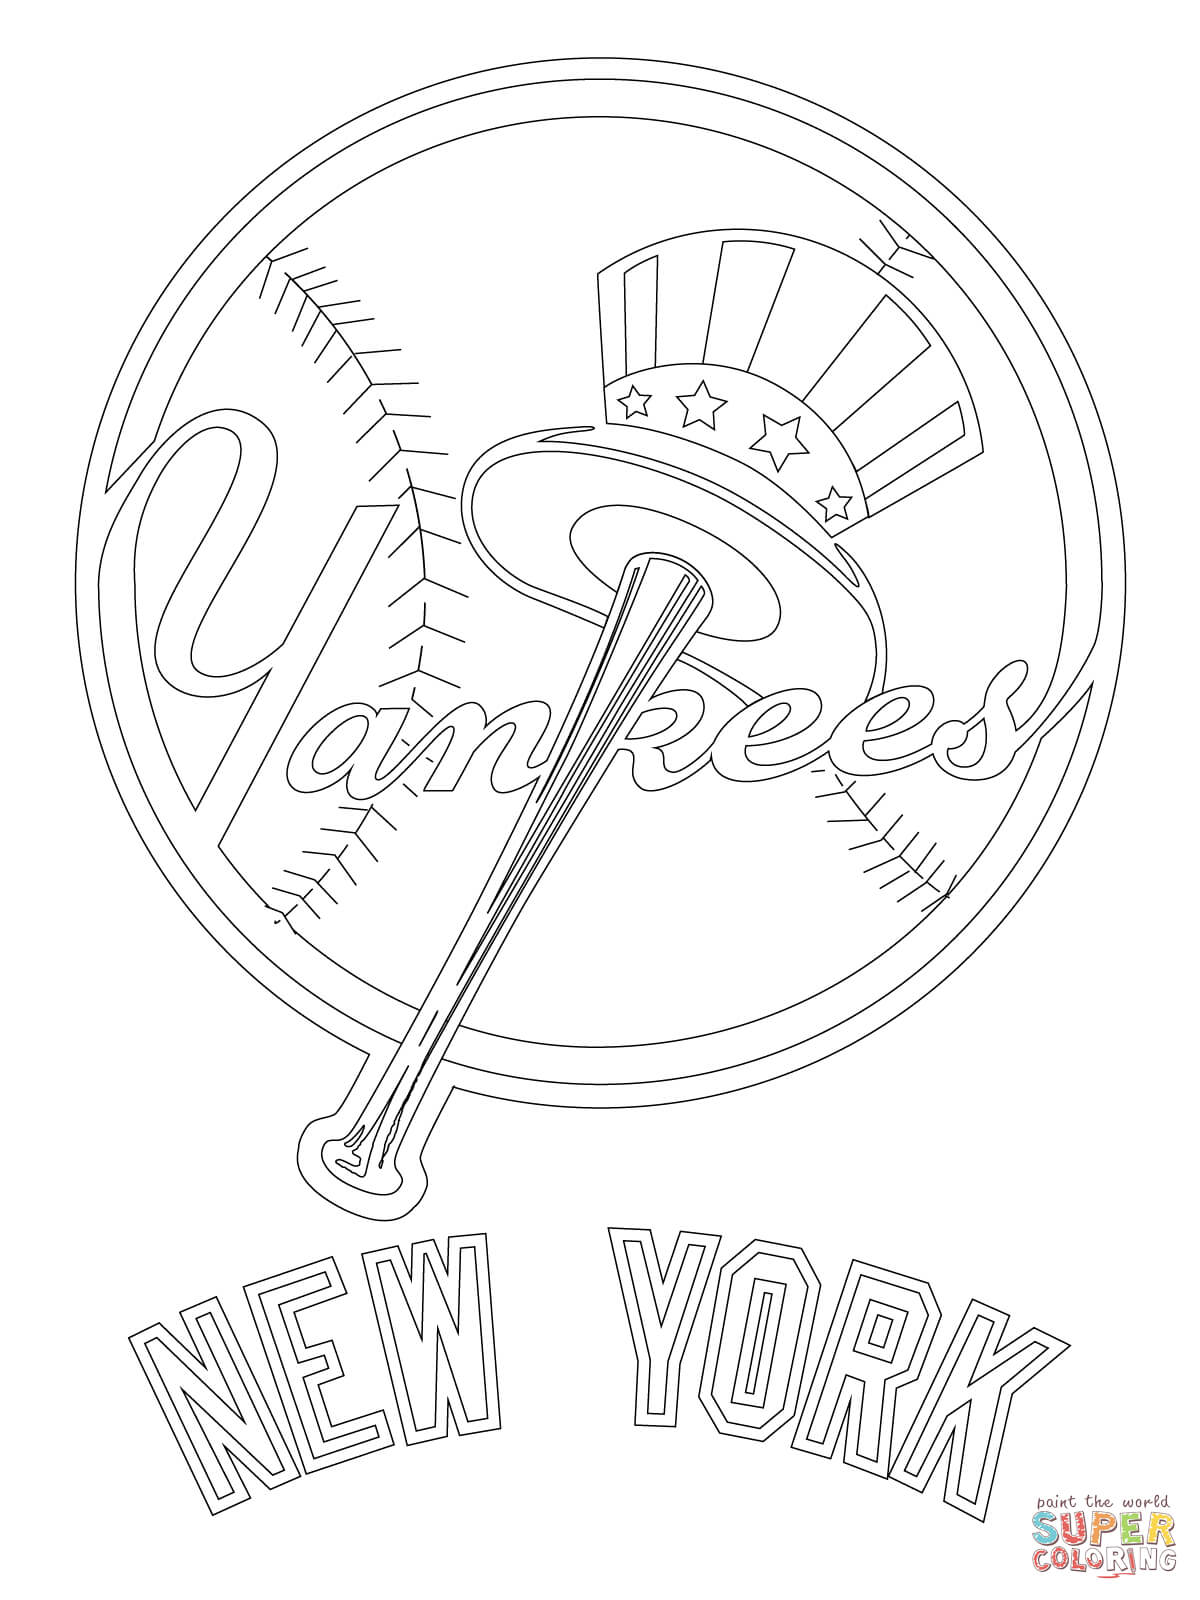 new york jets coloring pages nhl coloring pages color online free printable jets pages coloring york new